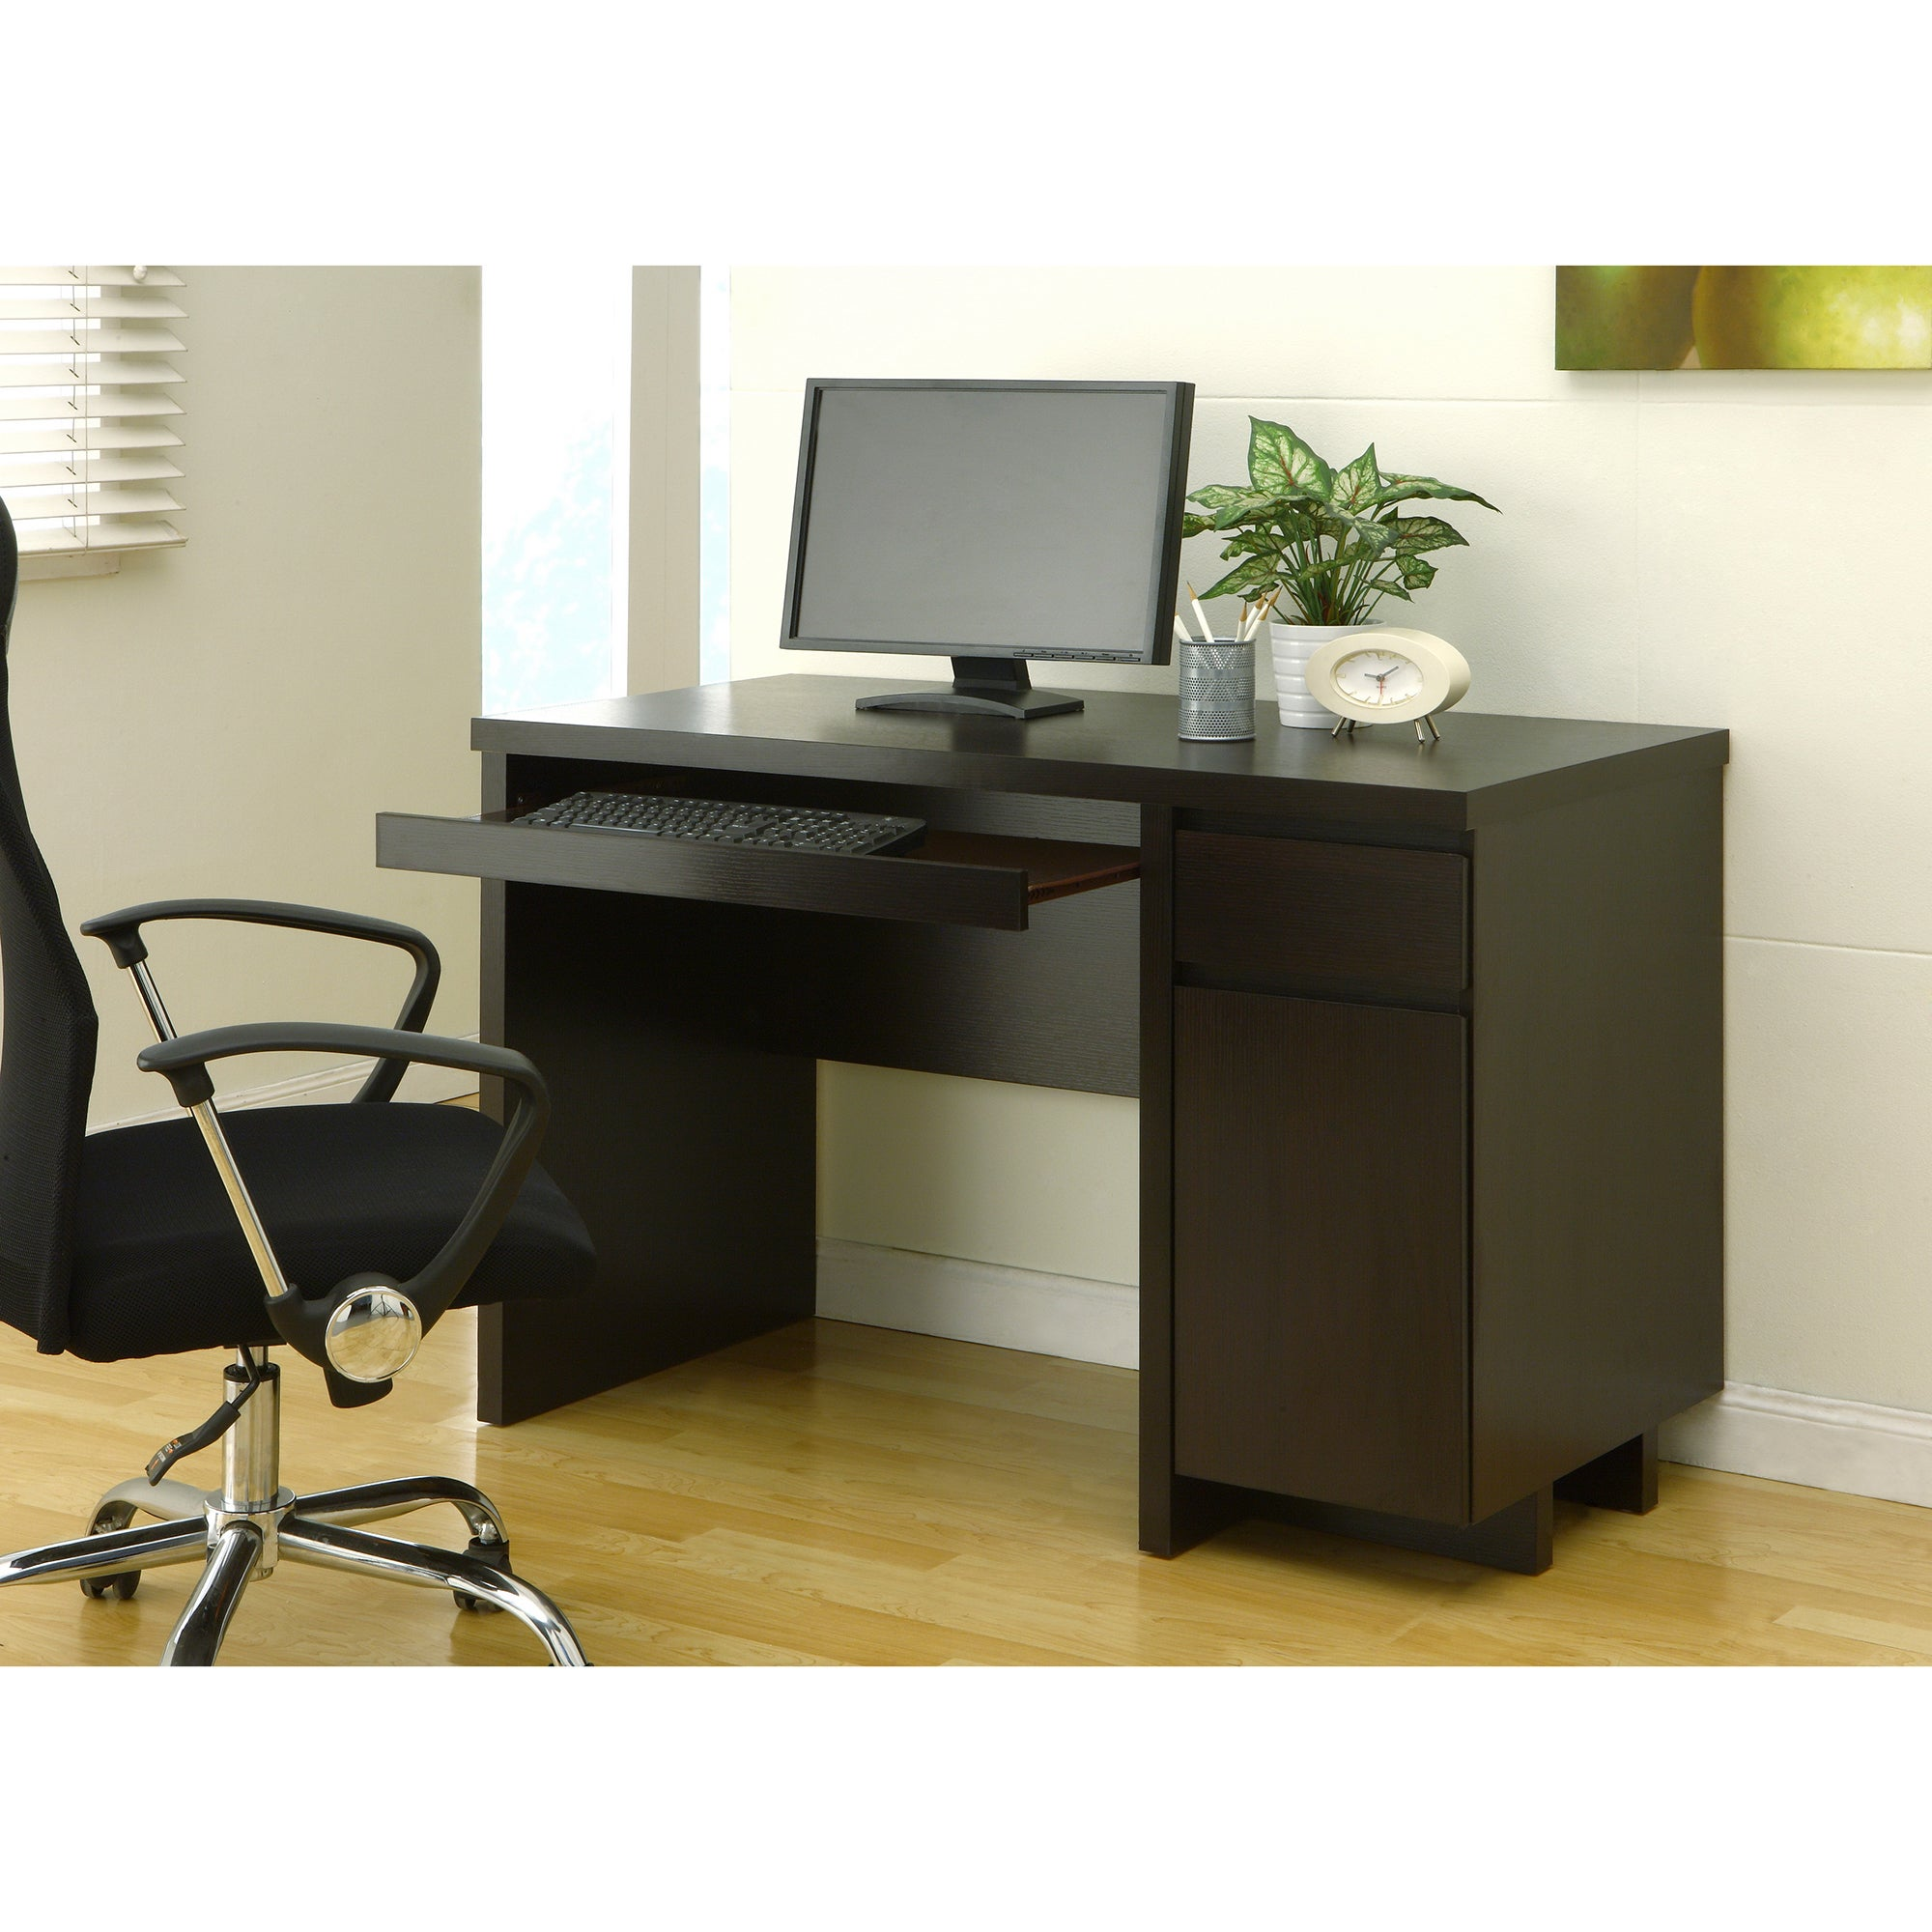 Mainstreet Cappuccino Office Desk with Keyboard Tray at Sears.com